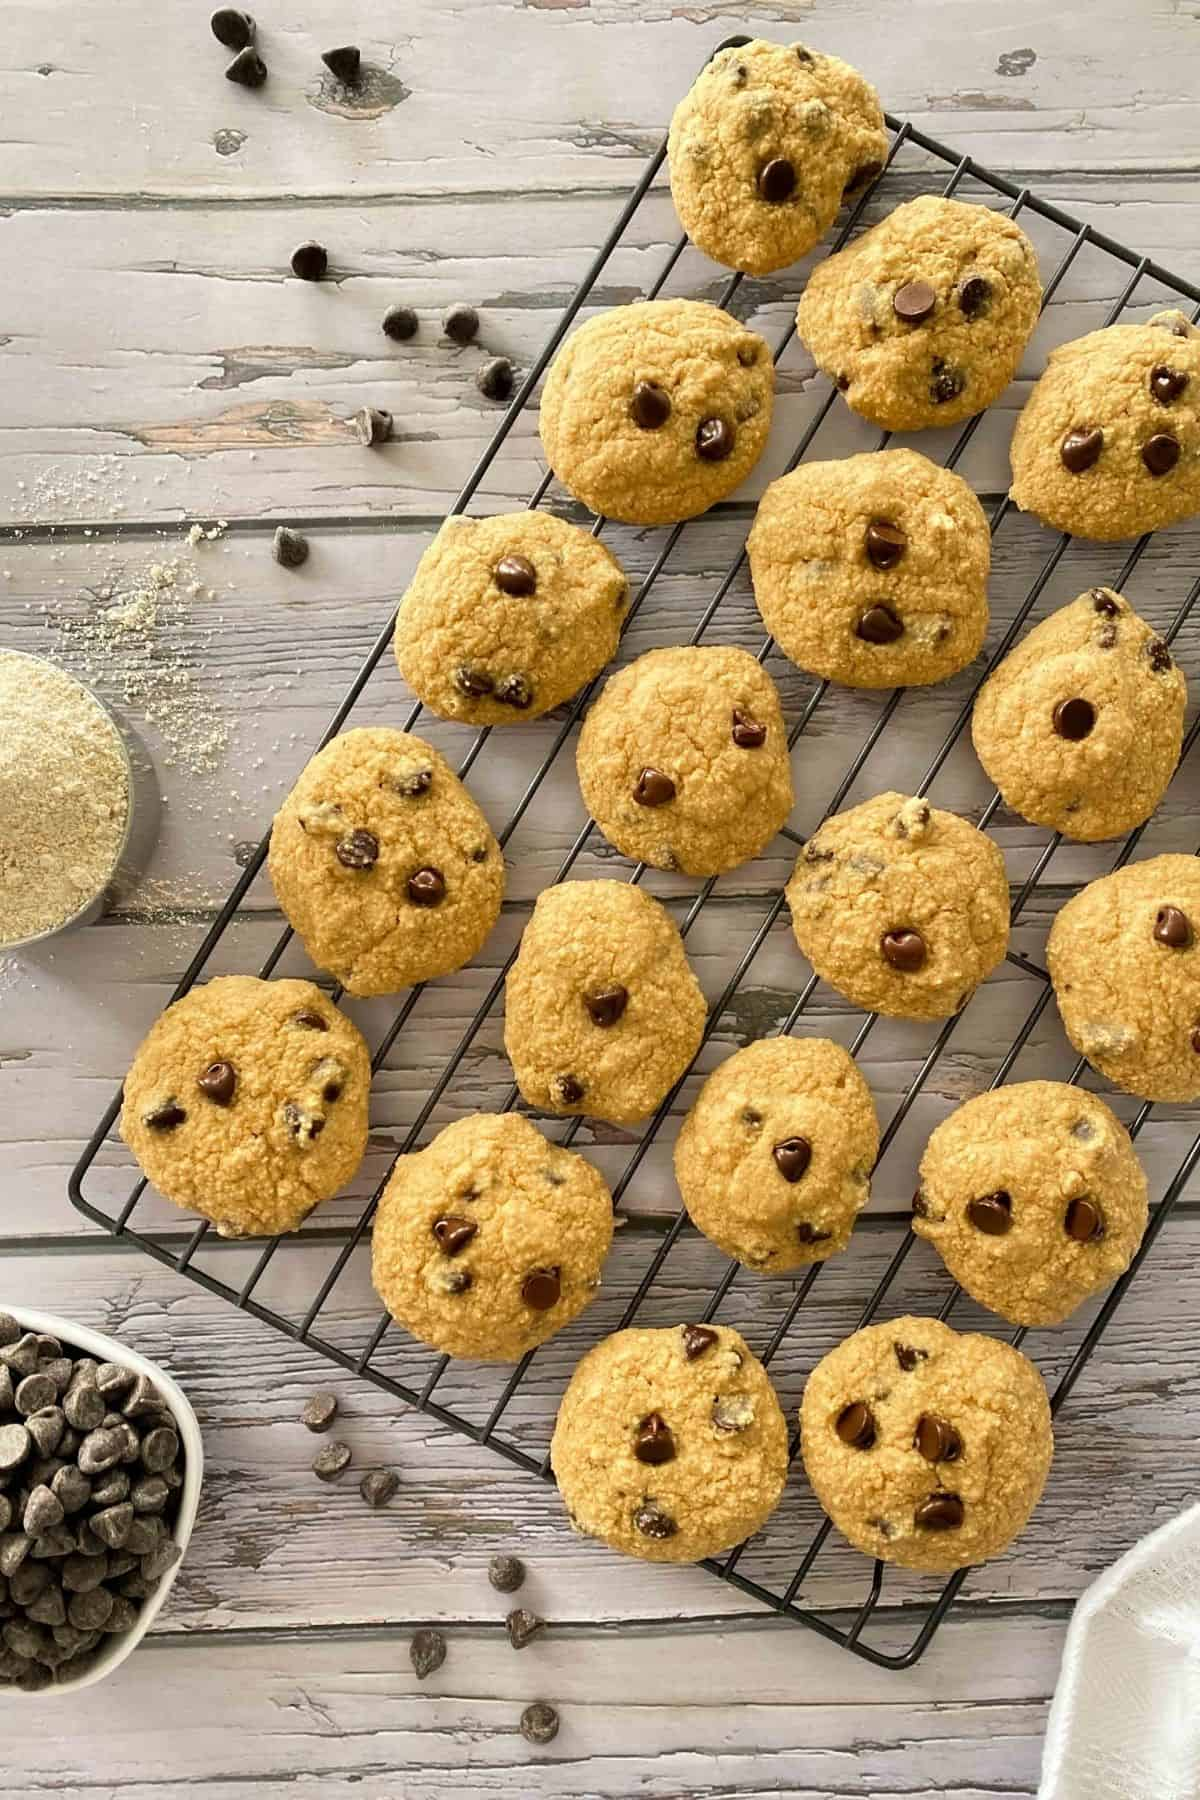 Chocolate chip cookies on wire rack with cup of flour and bowl of chocolate chips on the side.